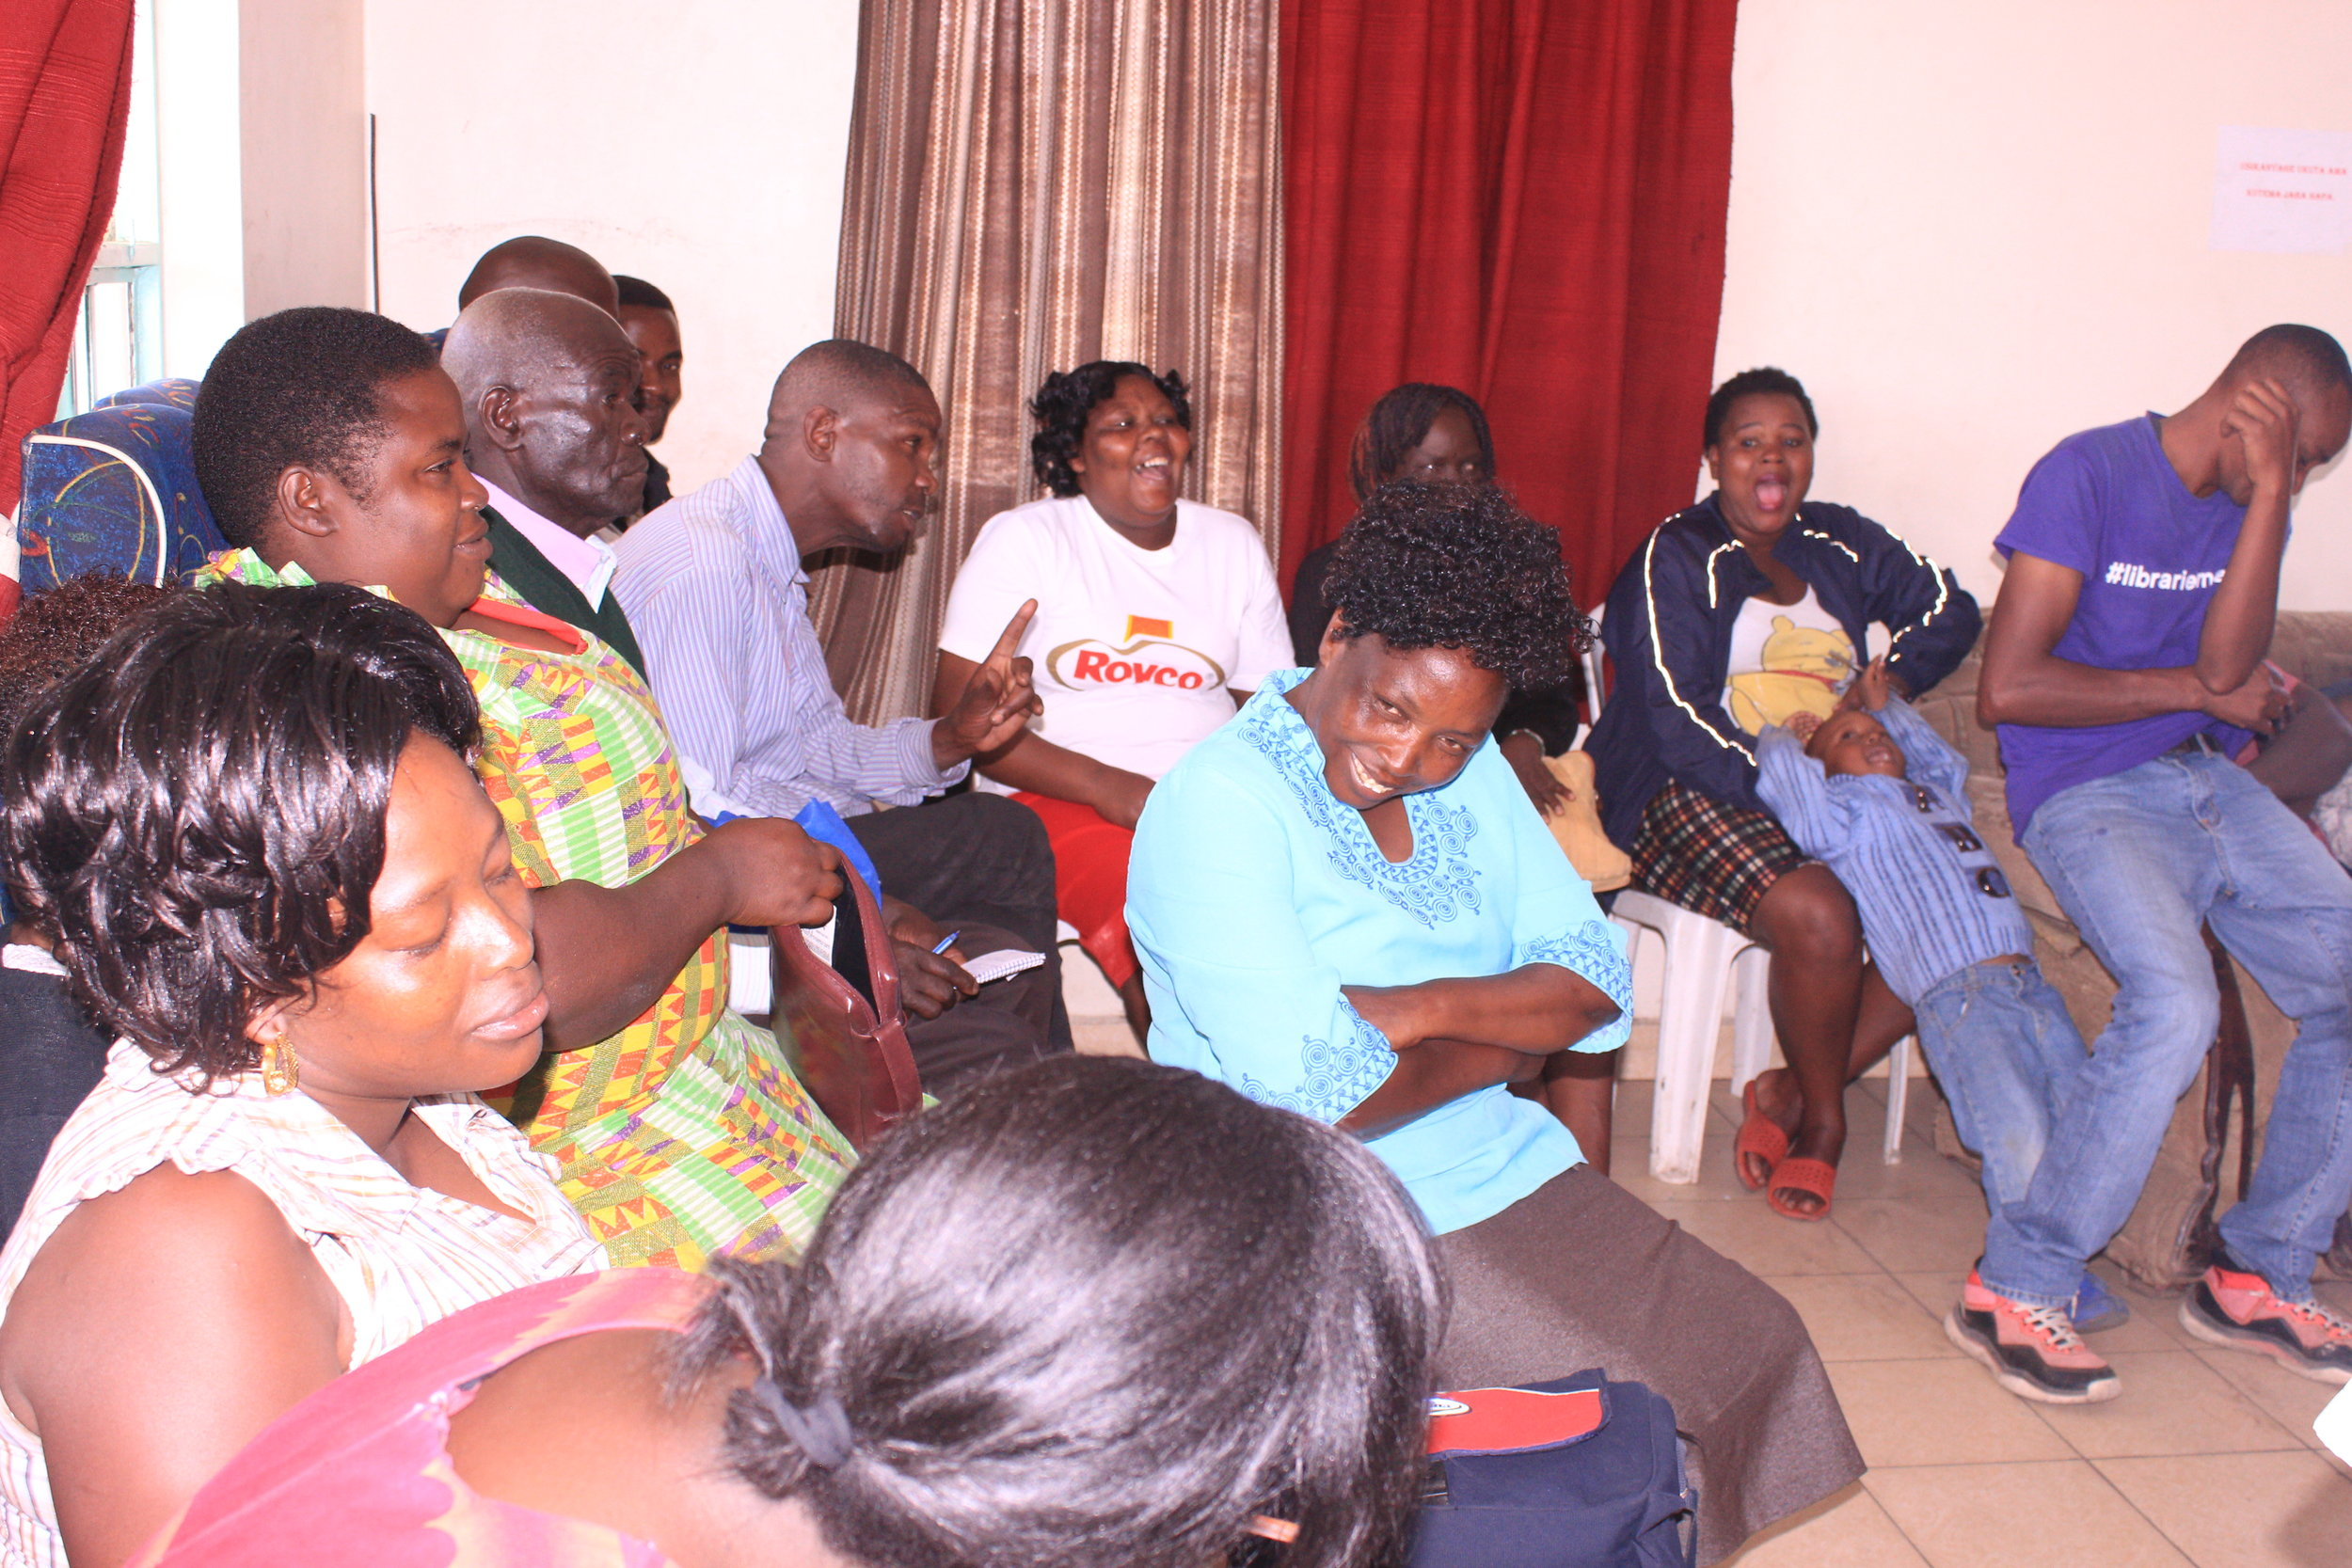 The Health consortium pre-consultation with Viwandani (residents from segments 1, 2, and 3) was held on 8 November 2018